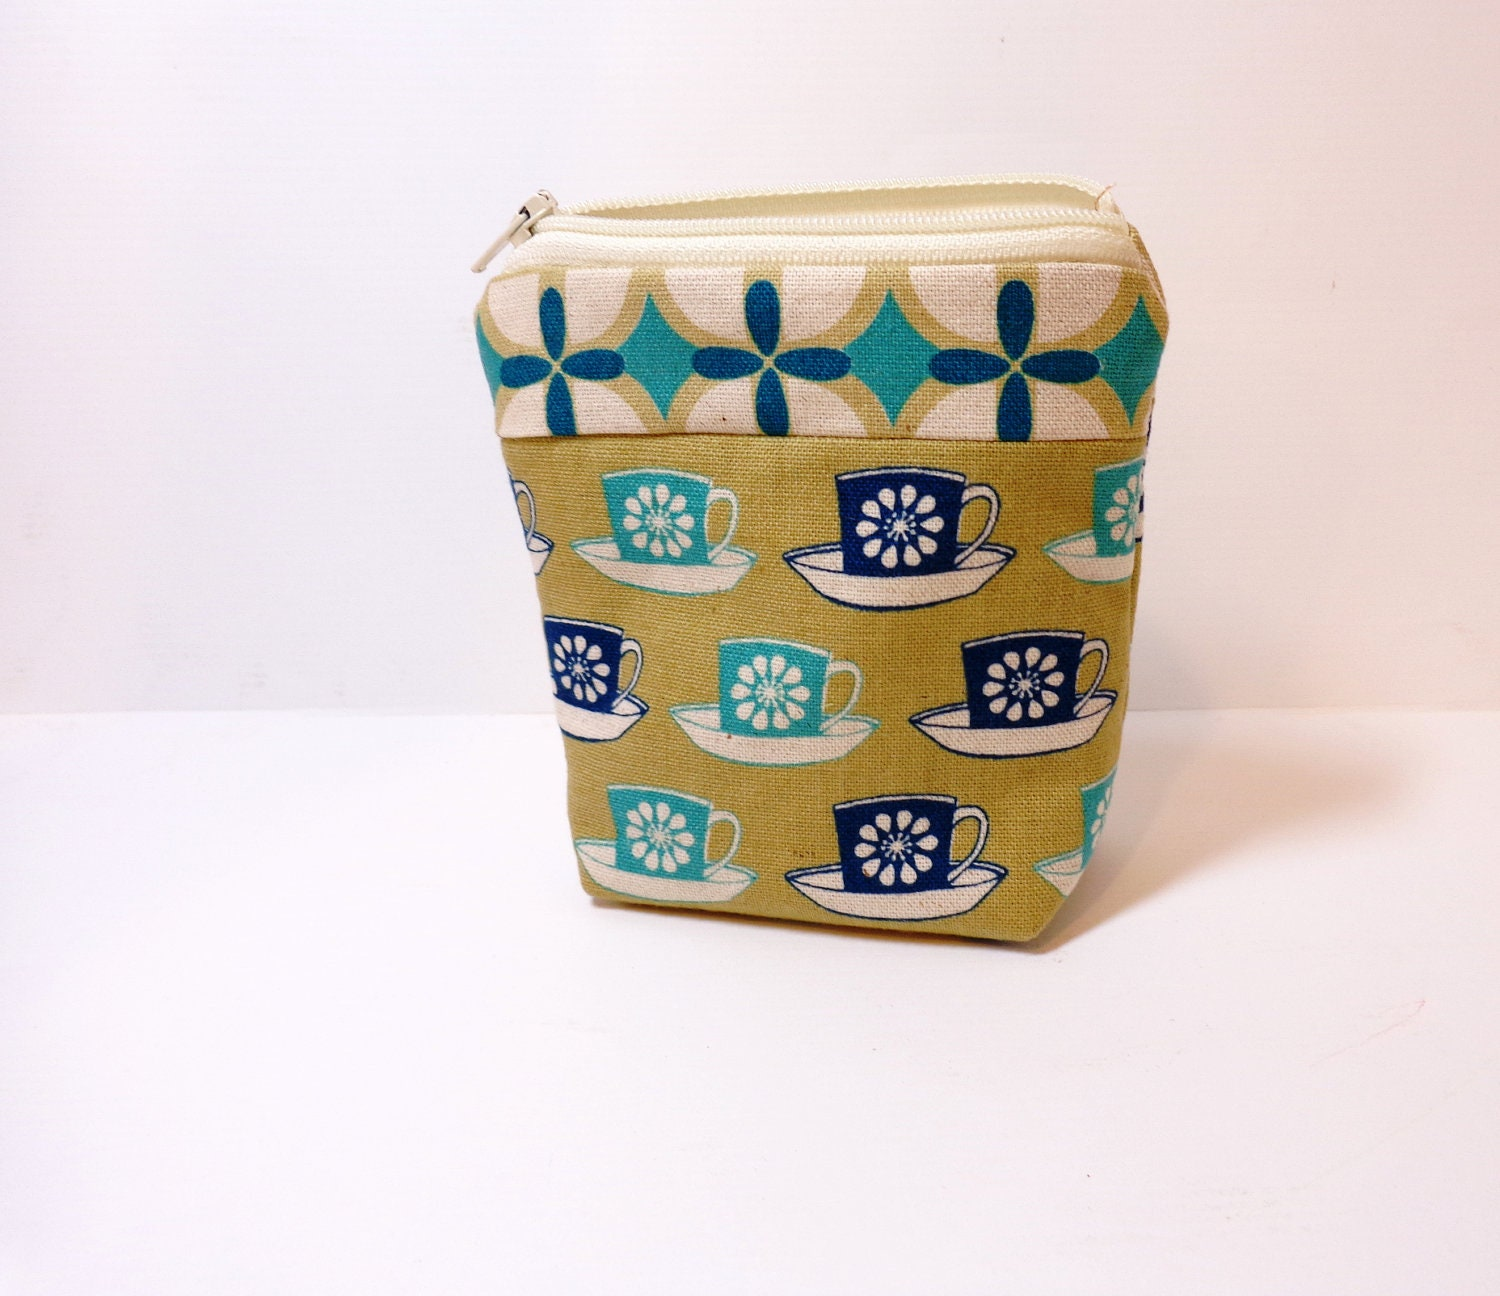 Small  Zipper Pouch Small Change Purse Small Wallet  Teacups in Teal and Blue